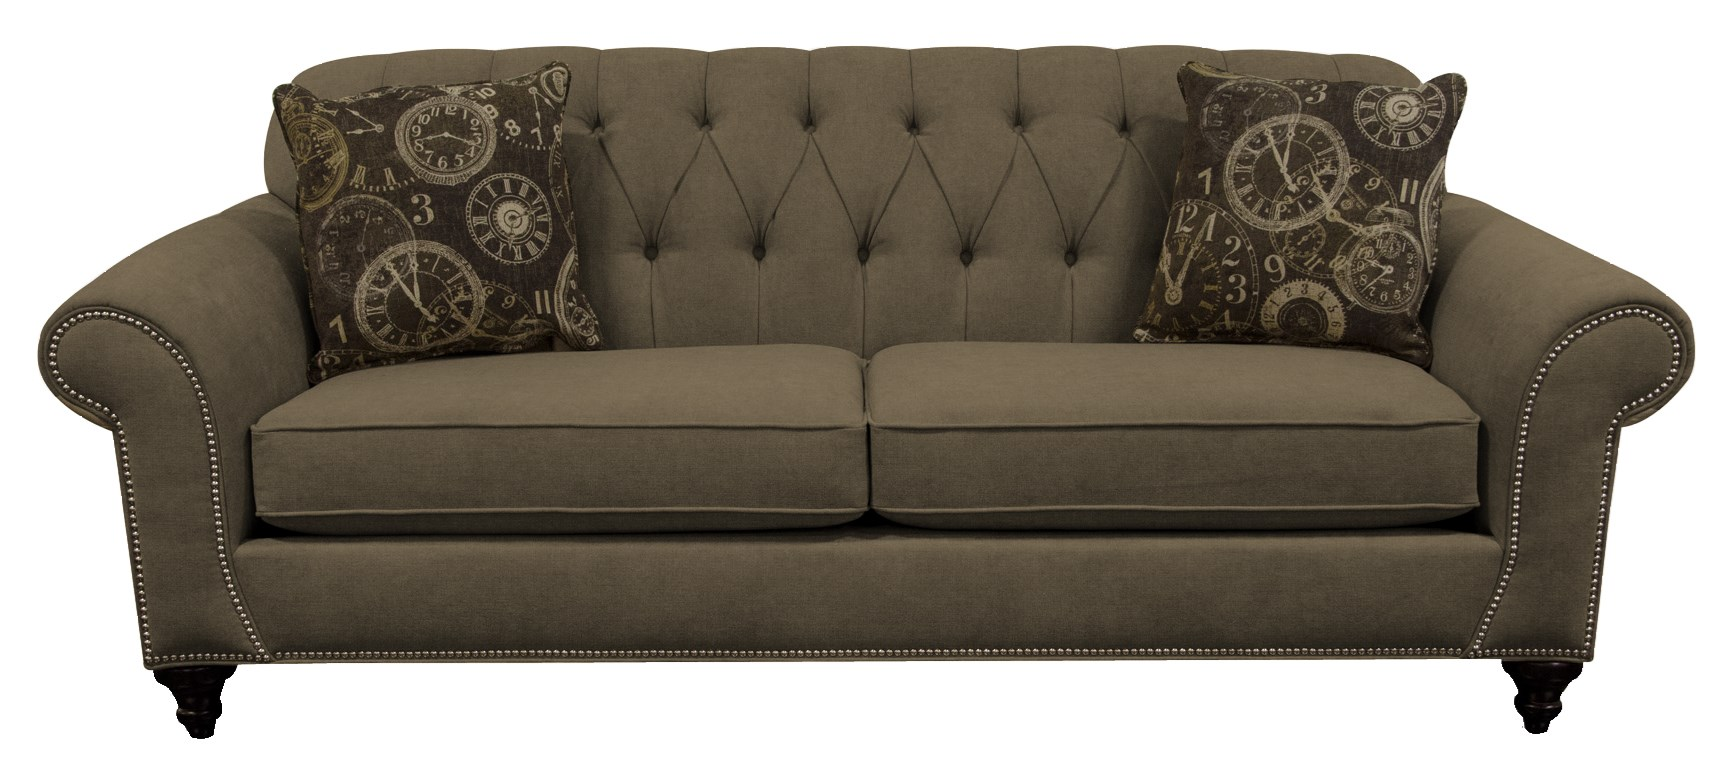 England Stacy Sofa with Nailheads - Item Number: 5735N-6278